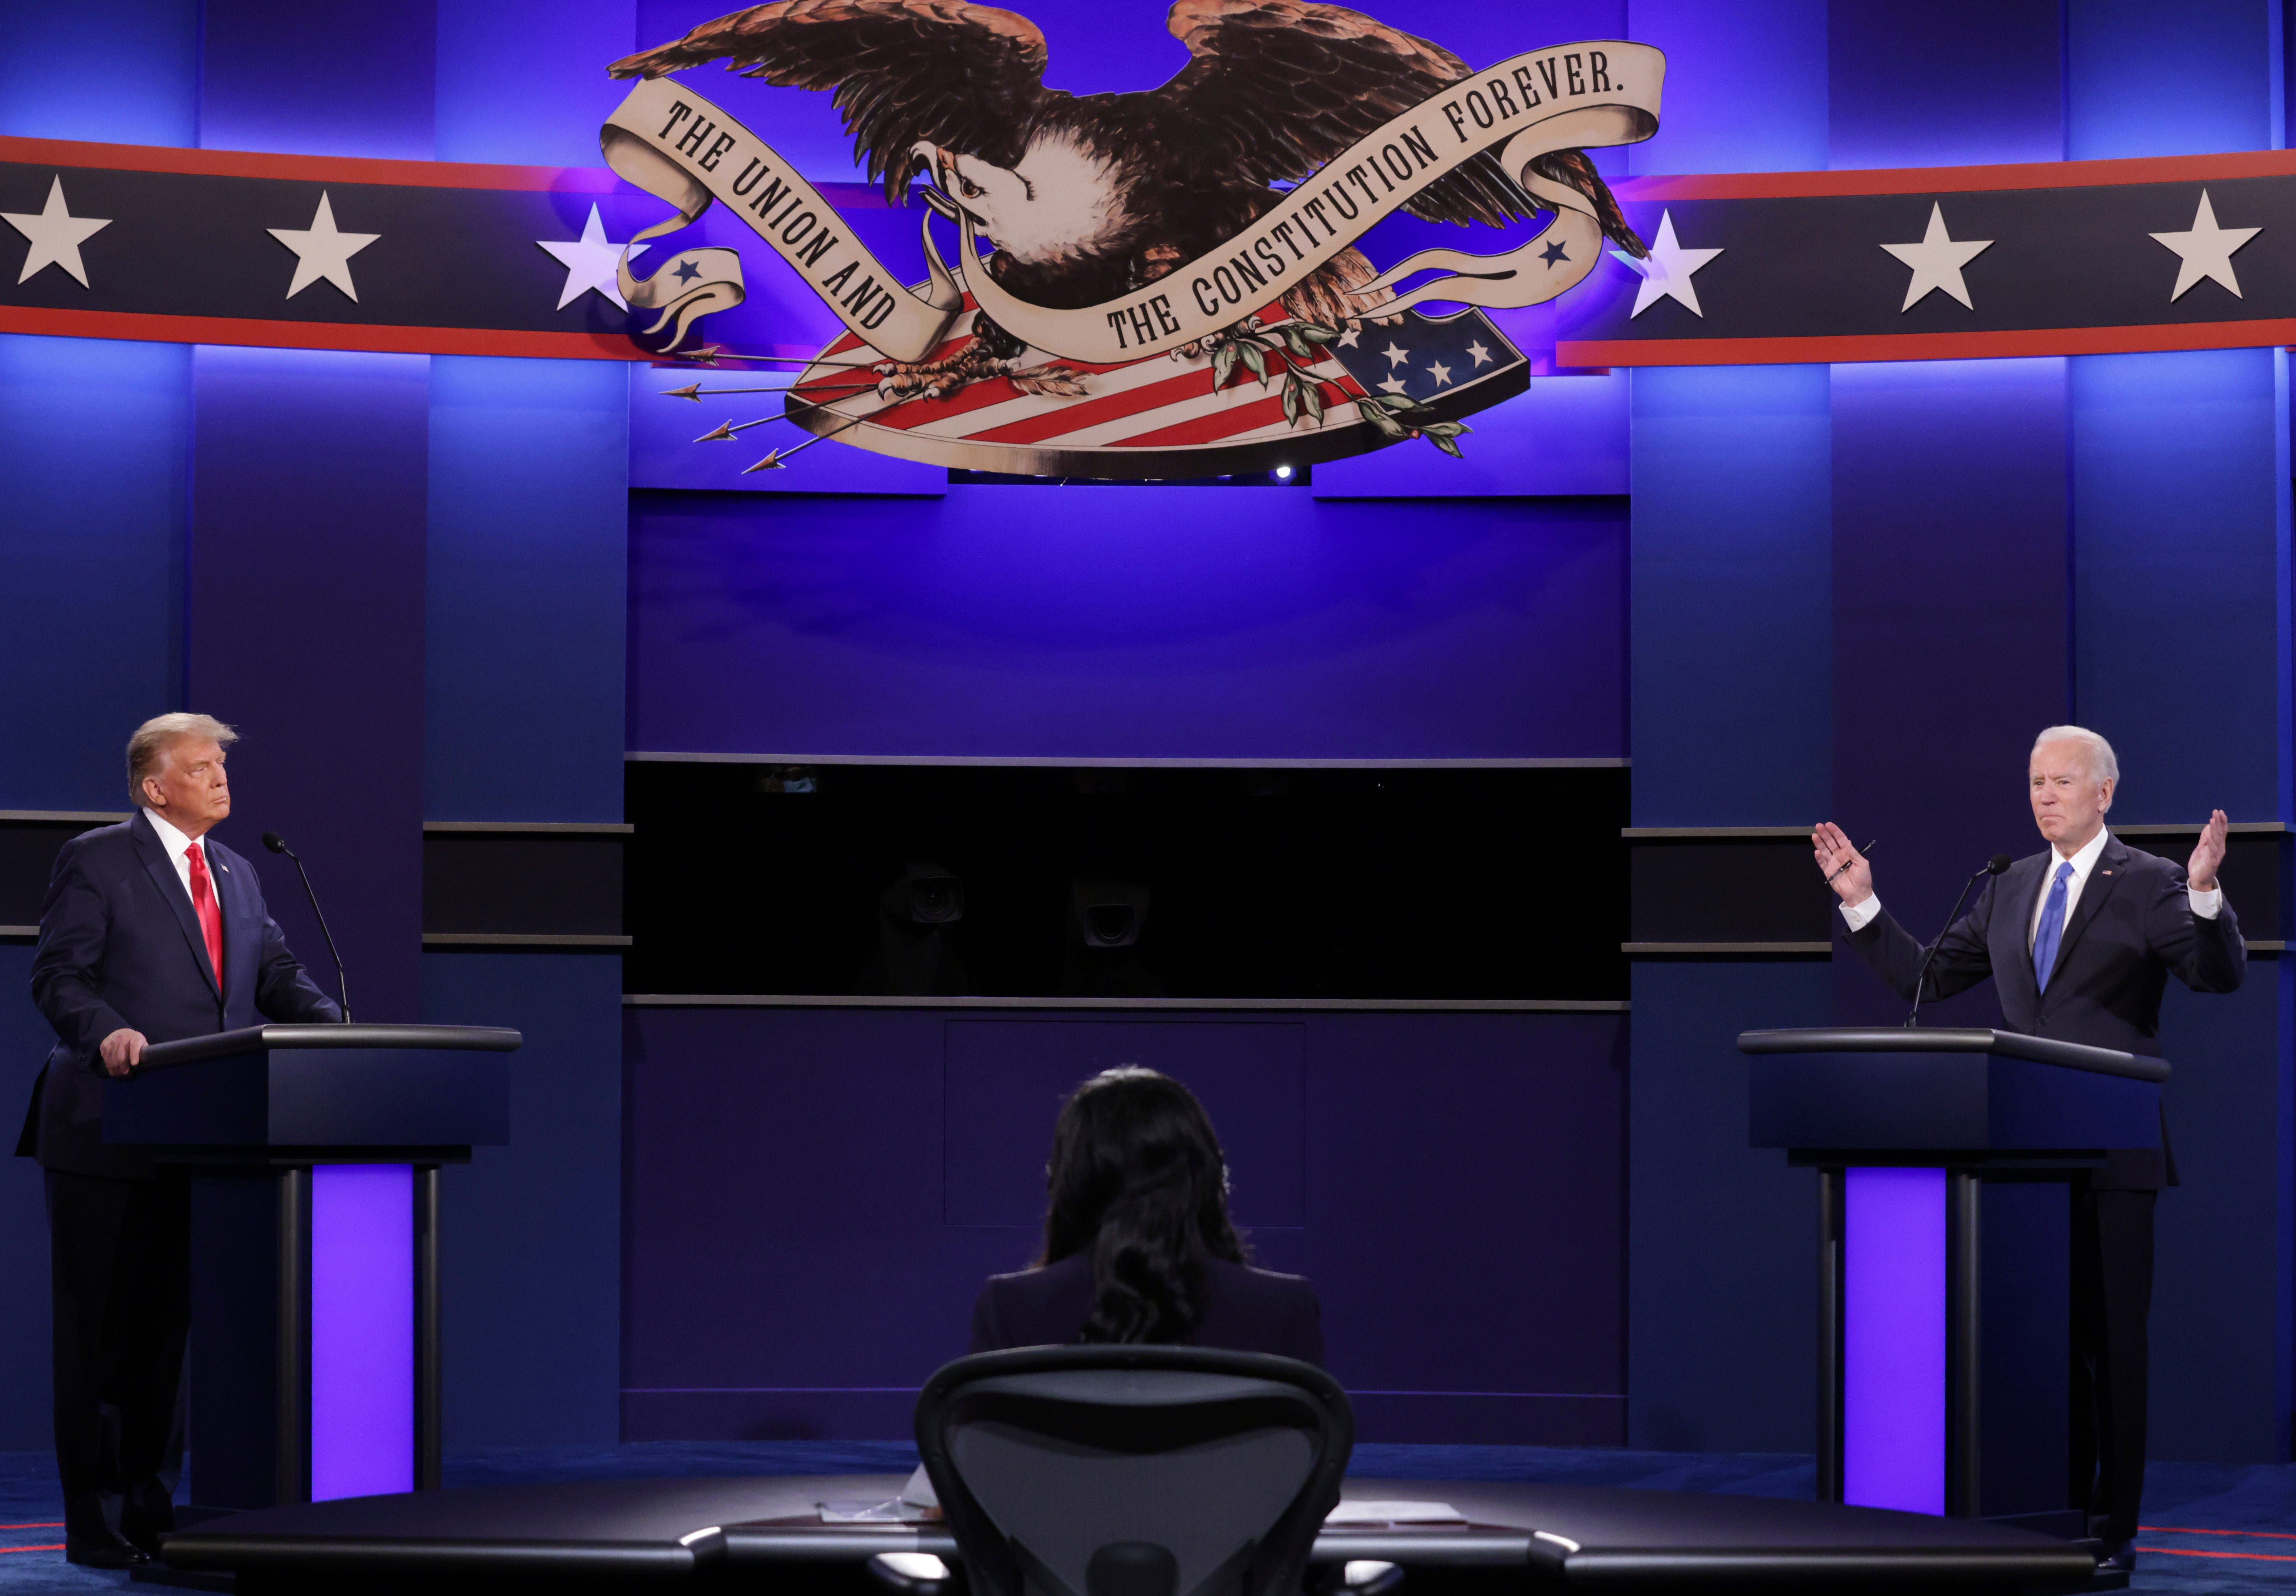 'Learning to live' with COVID-19, Bidencare and other top moments from the final presidential debate